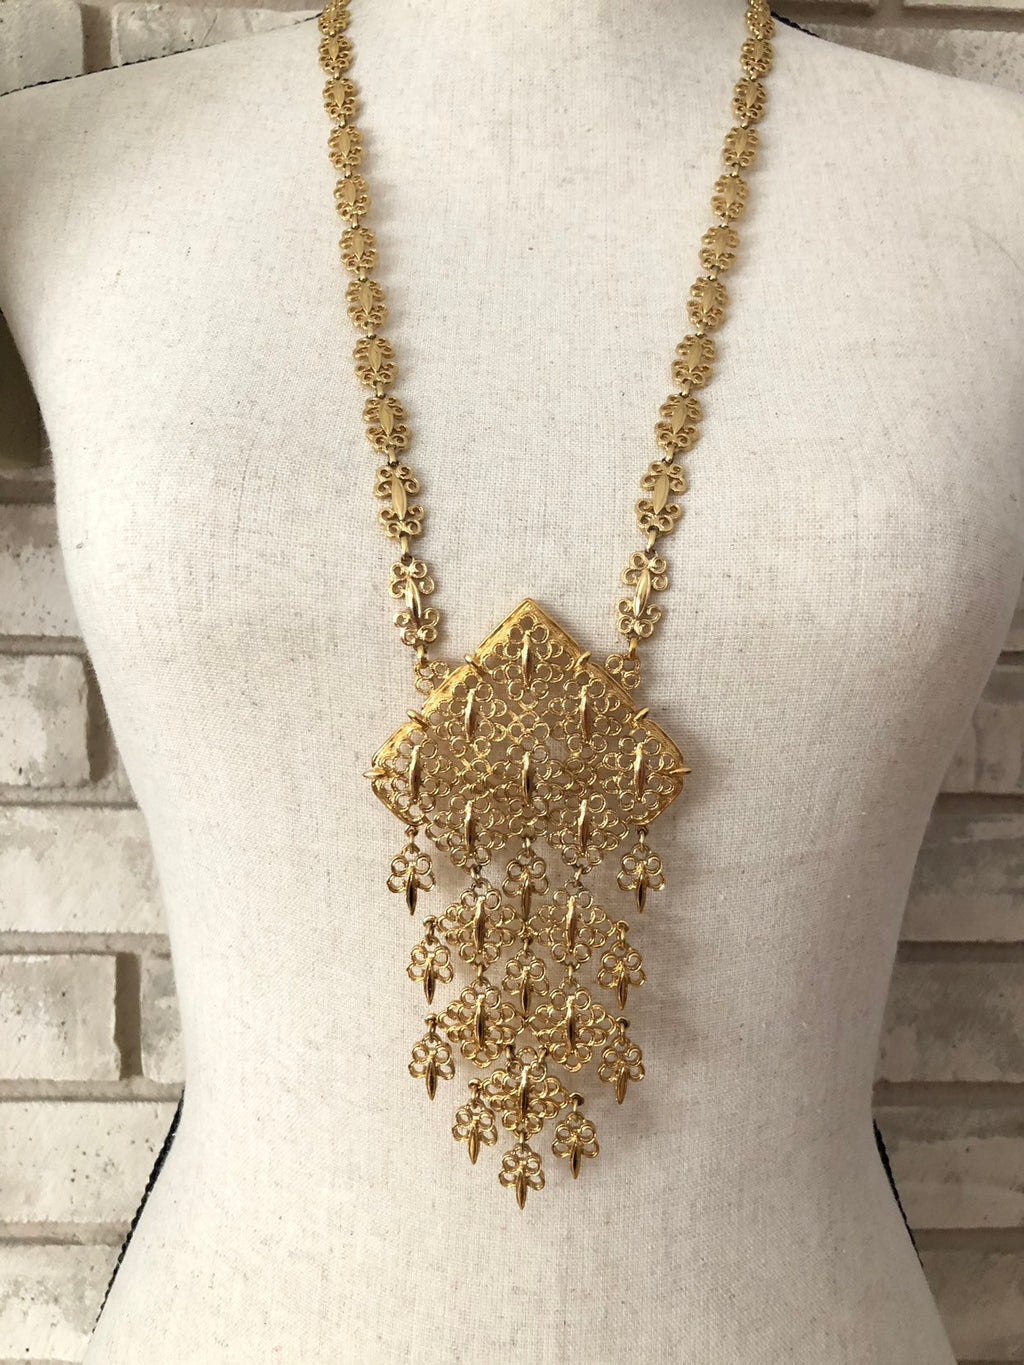 Vintage Monet Gold Filigree Statement Pendant